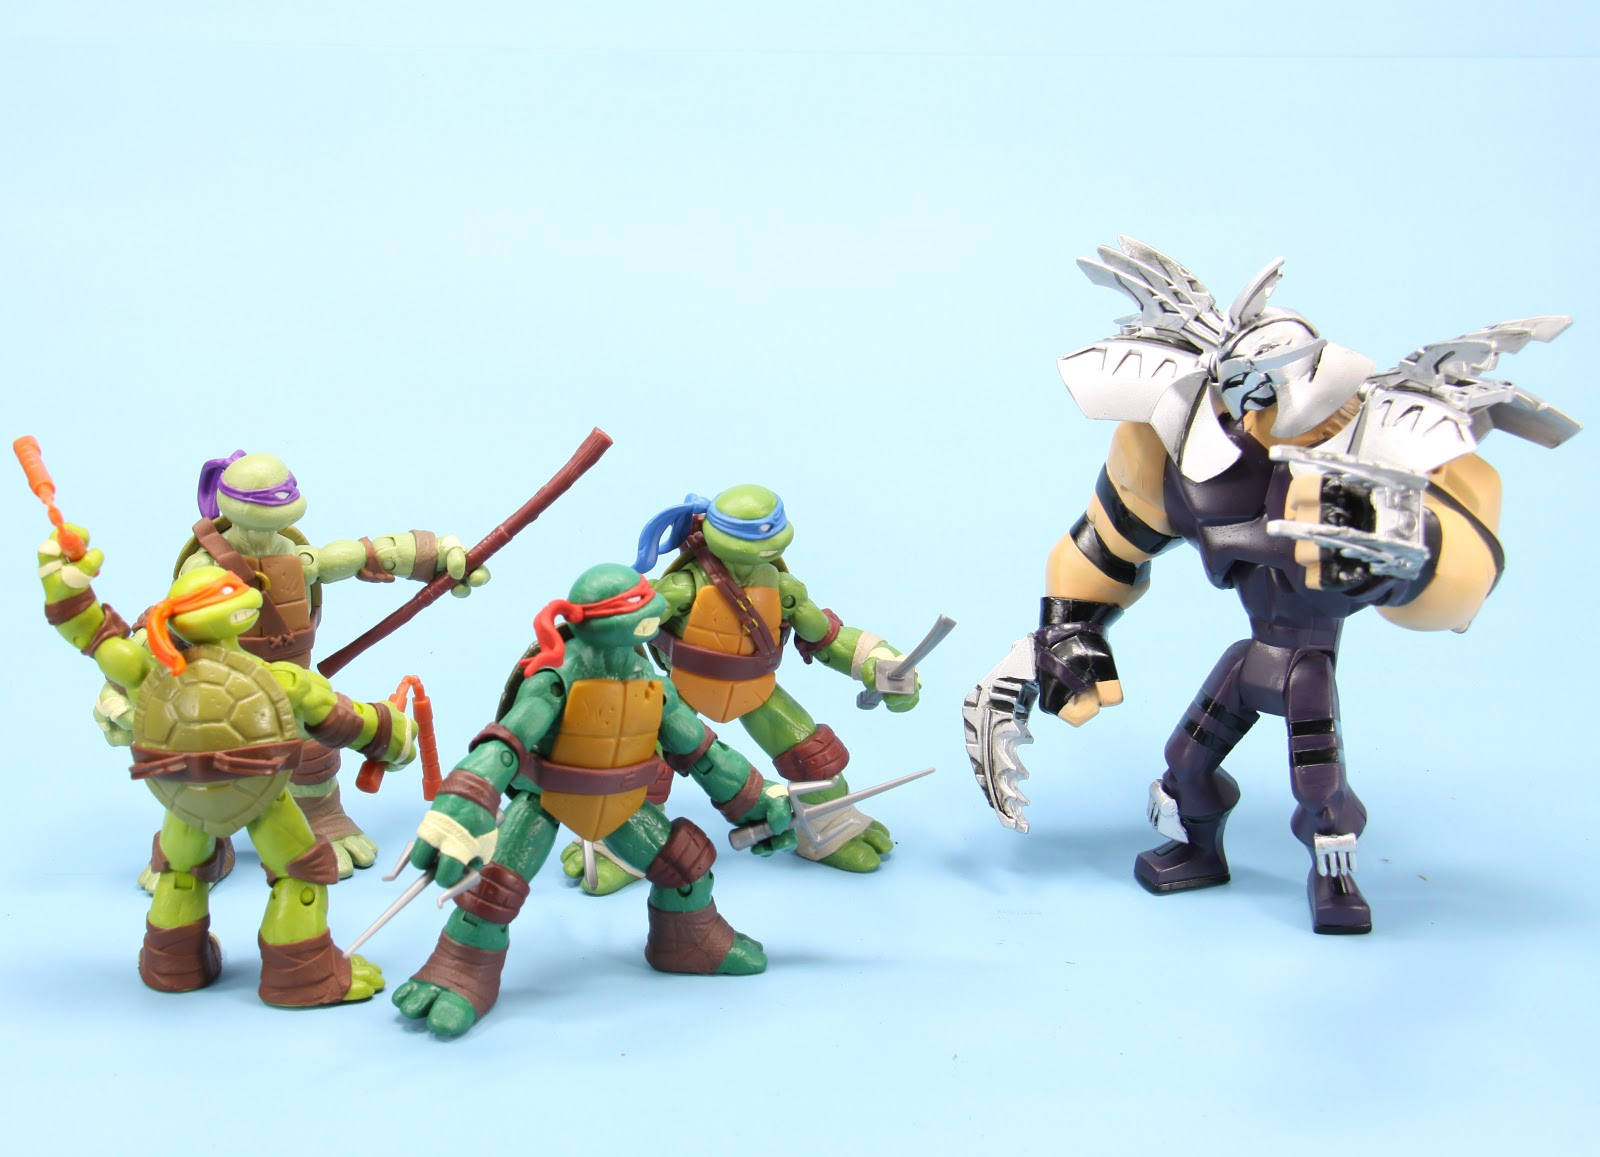 Packratstudios Massive Tmnt Update Usagi Yojimbo Krang 2 0 Slash